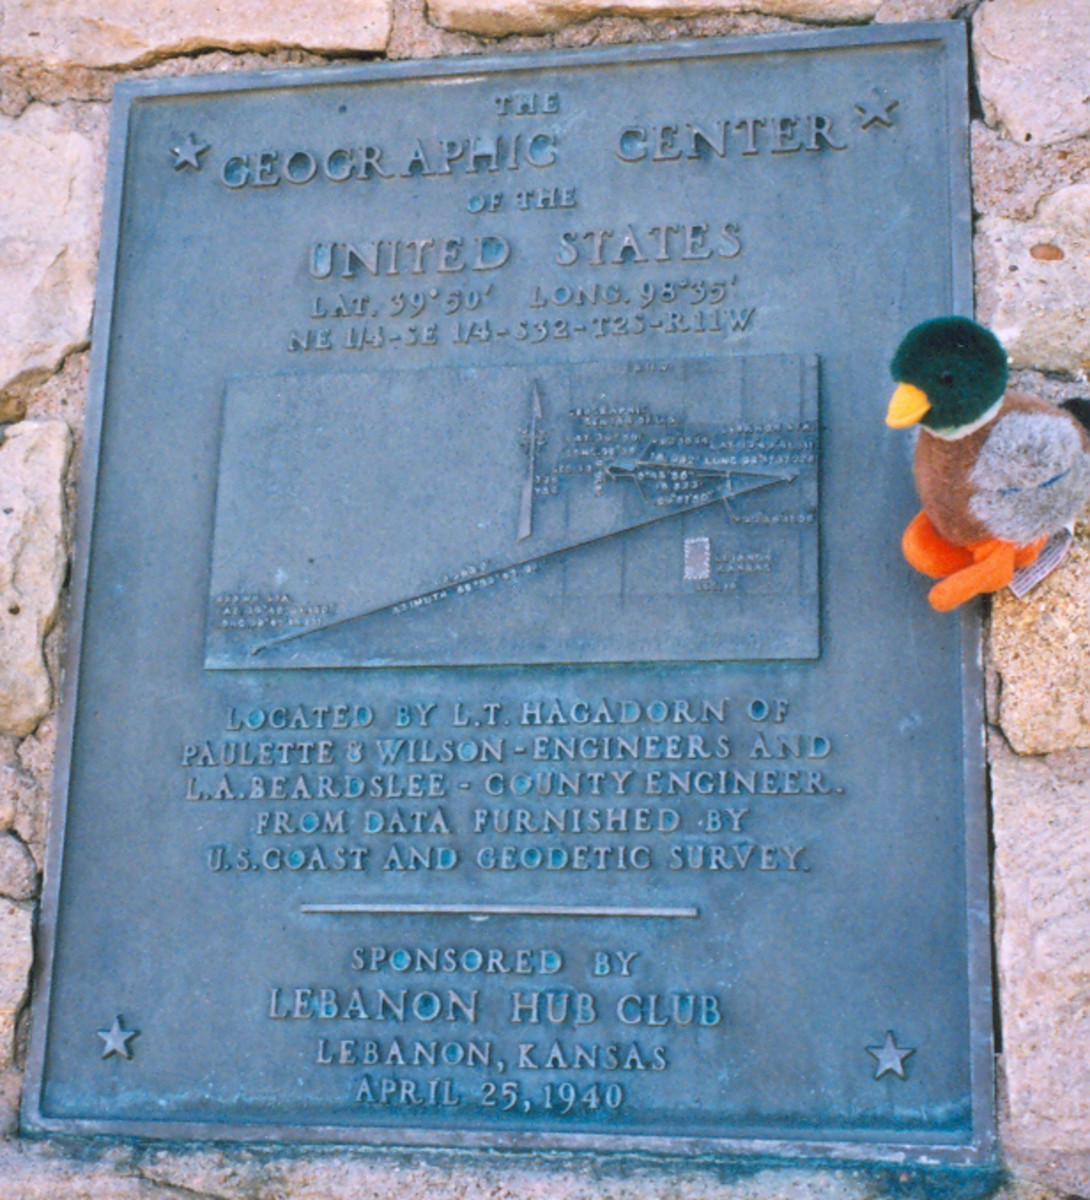 Geographic Center of the United States Historical Marker